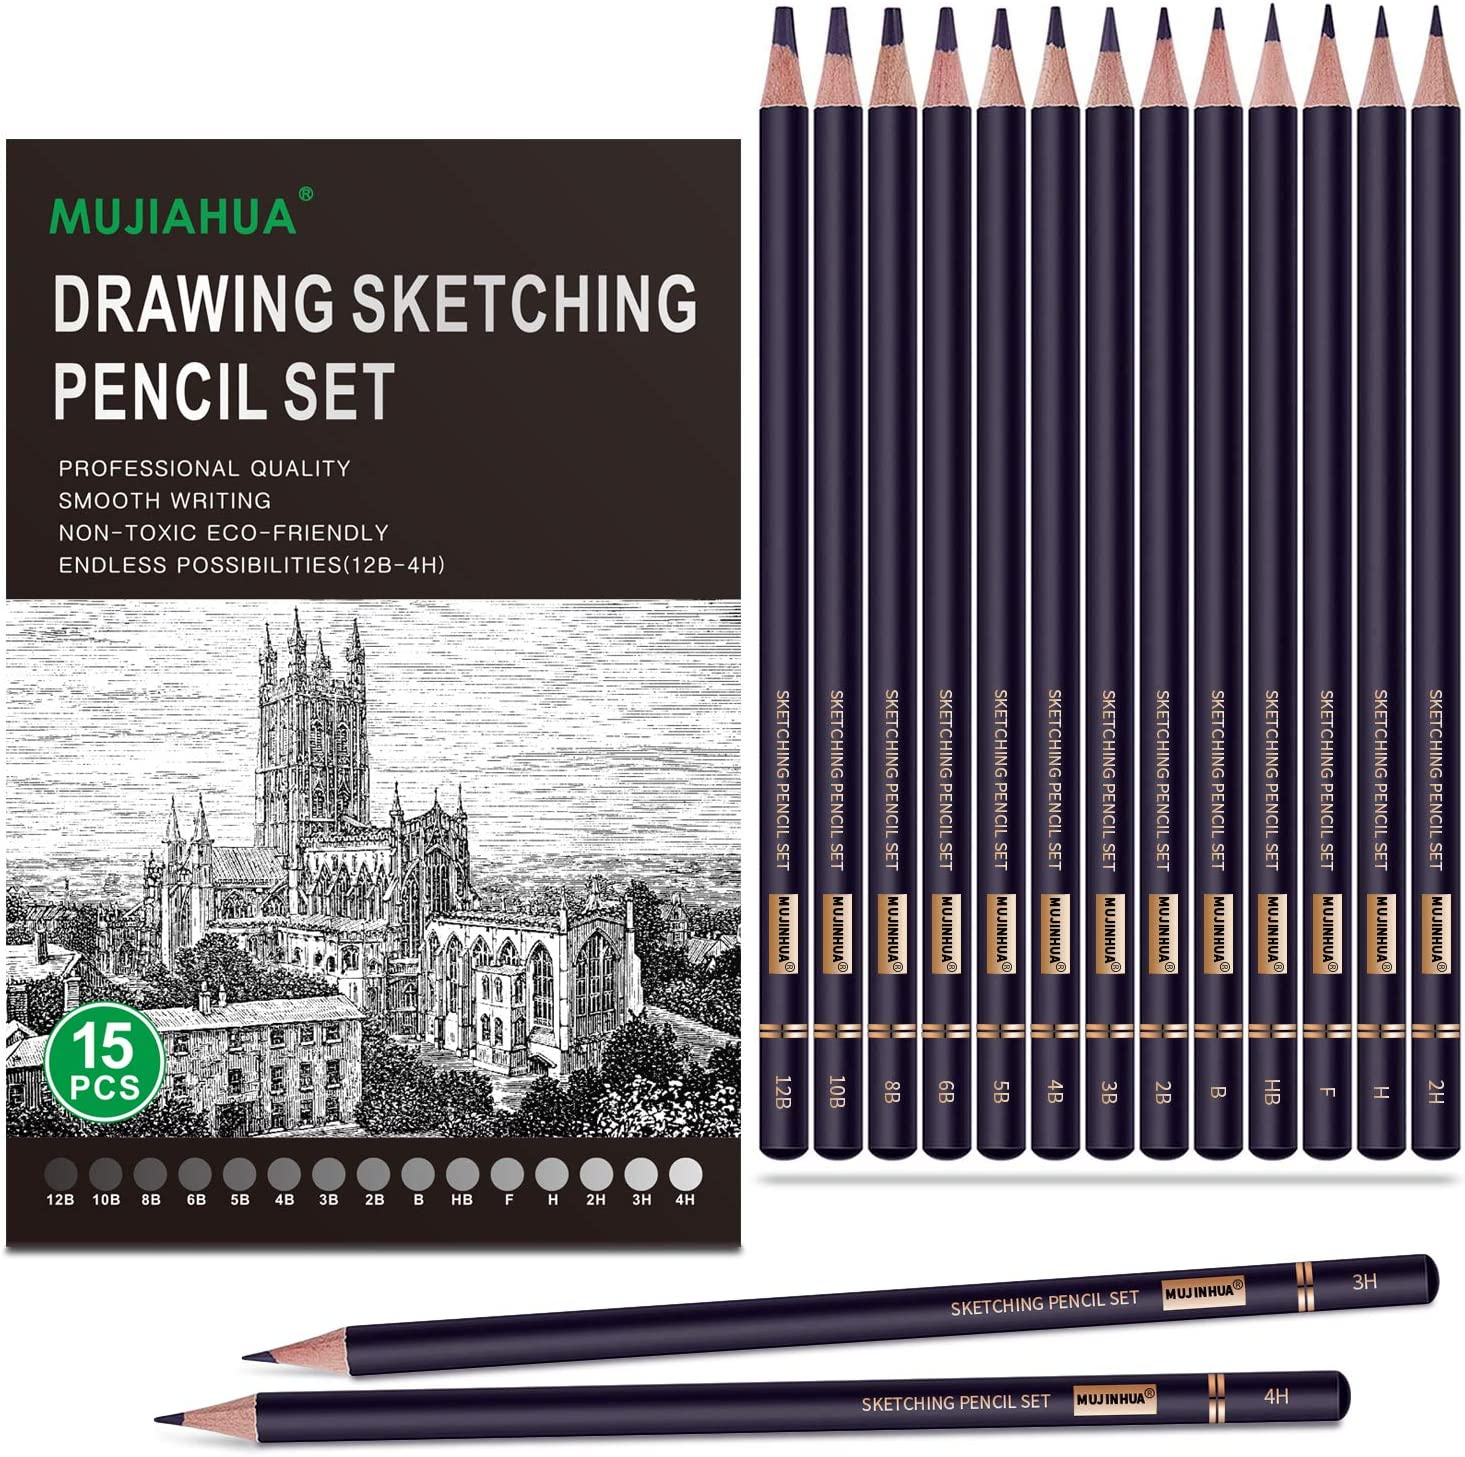 MUJINHUA Professional Max gift 43% OFF Drawing Sketch Pencils 15 Pieces Draw Set